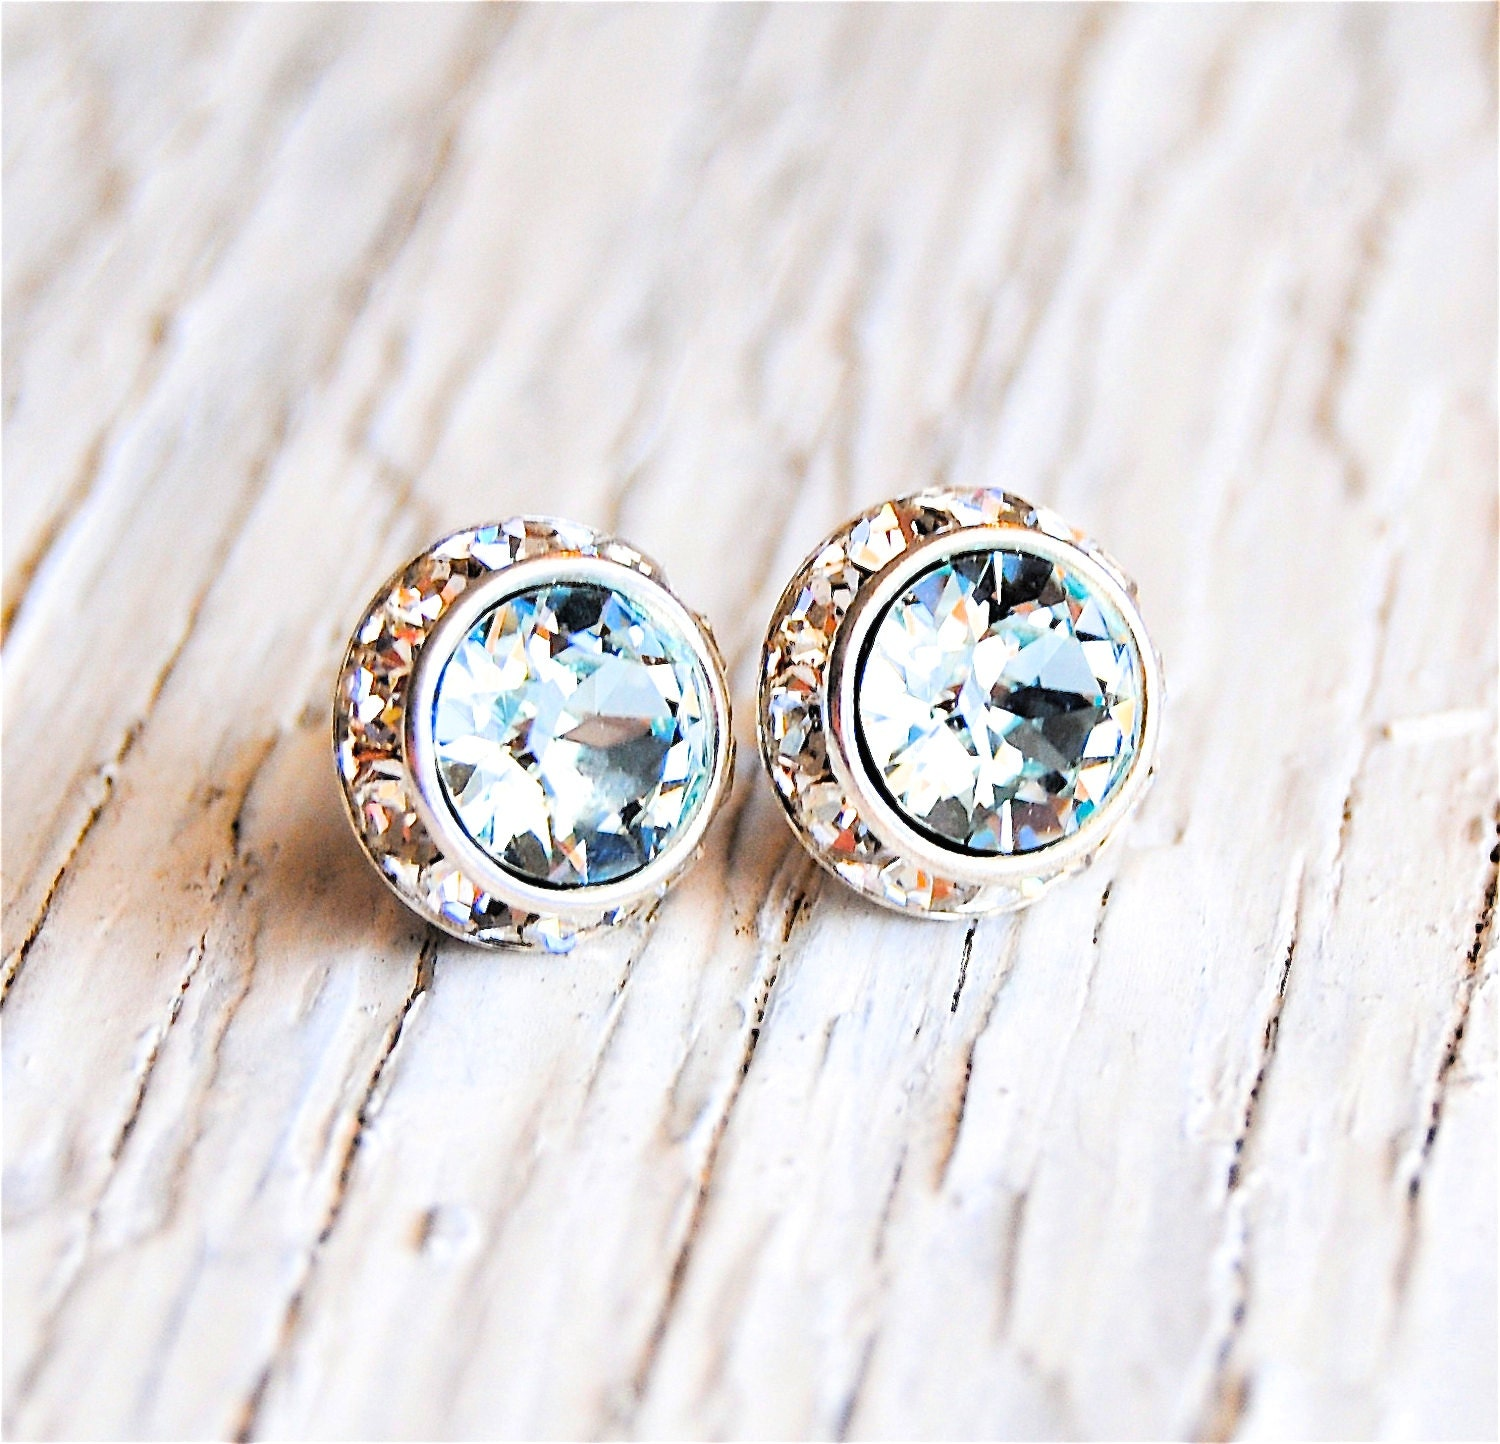 david genuine l london earrings stud deyong classy silver larger aquamarine studs view sterling by